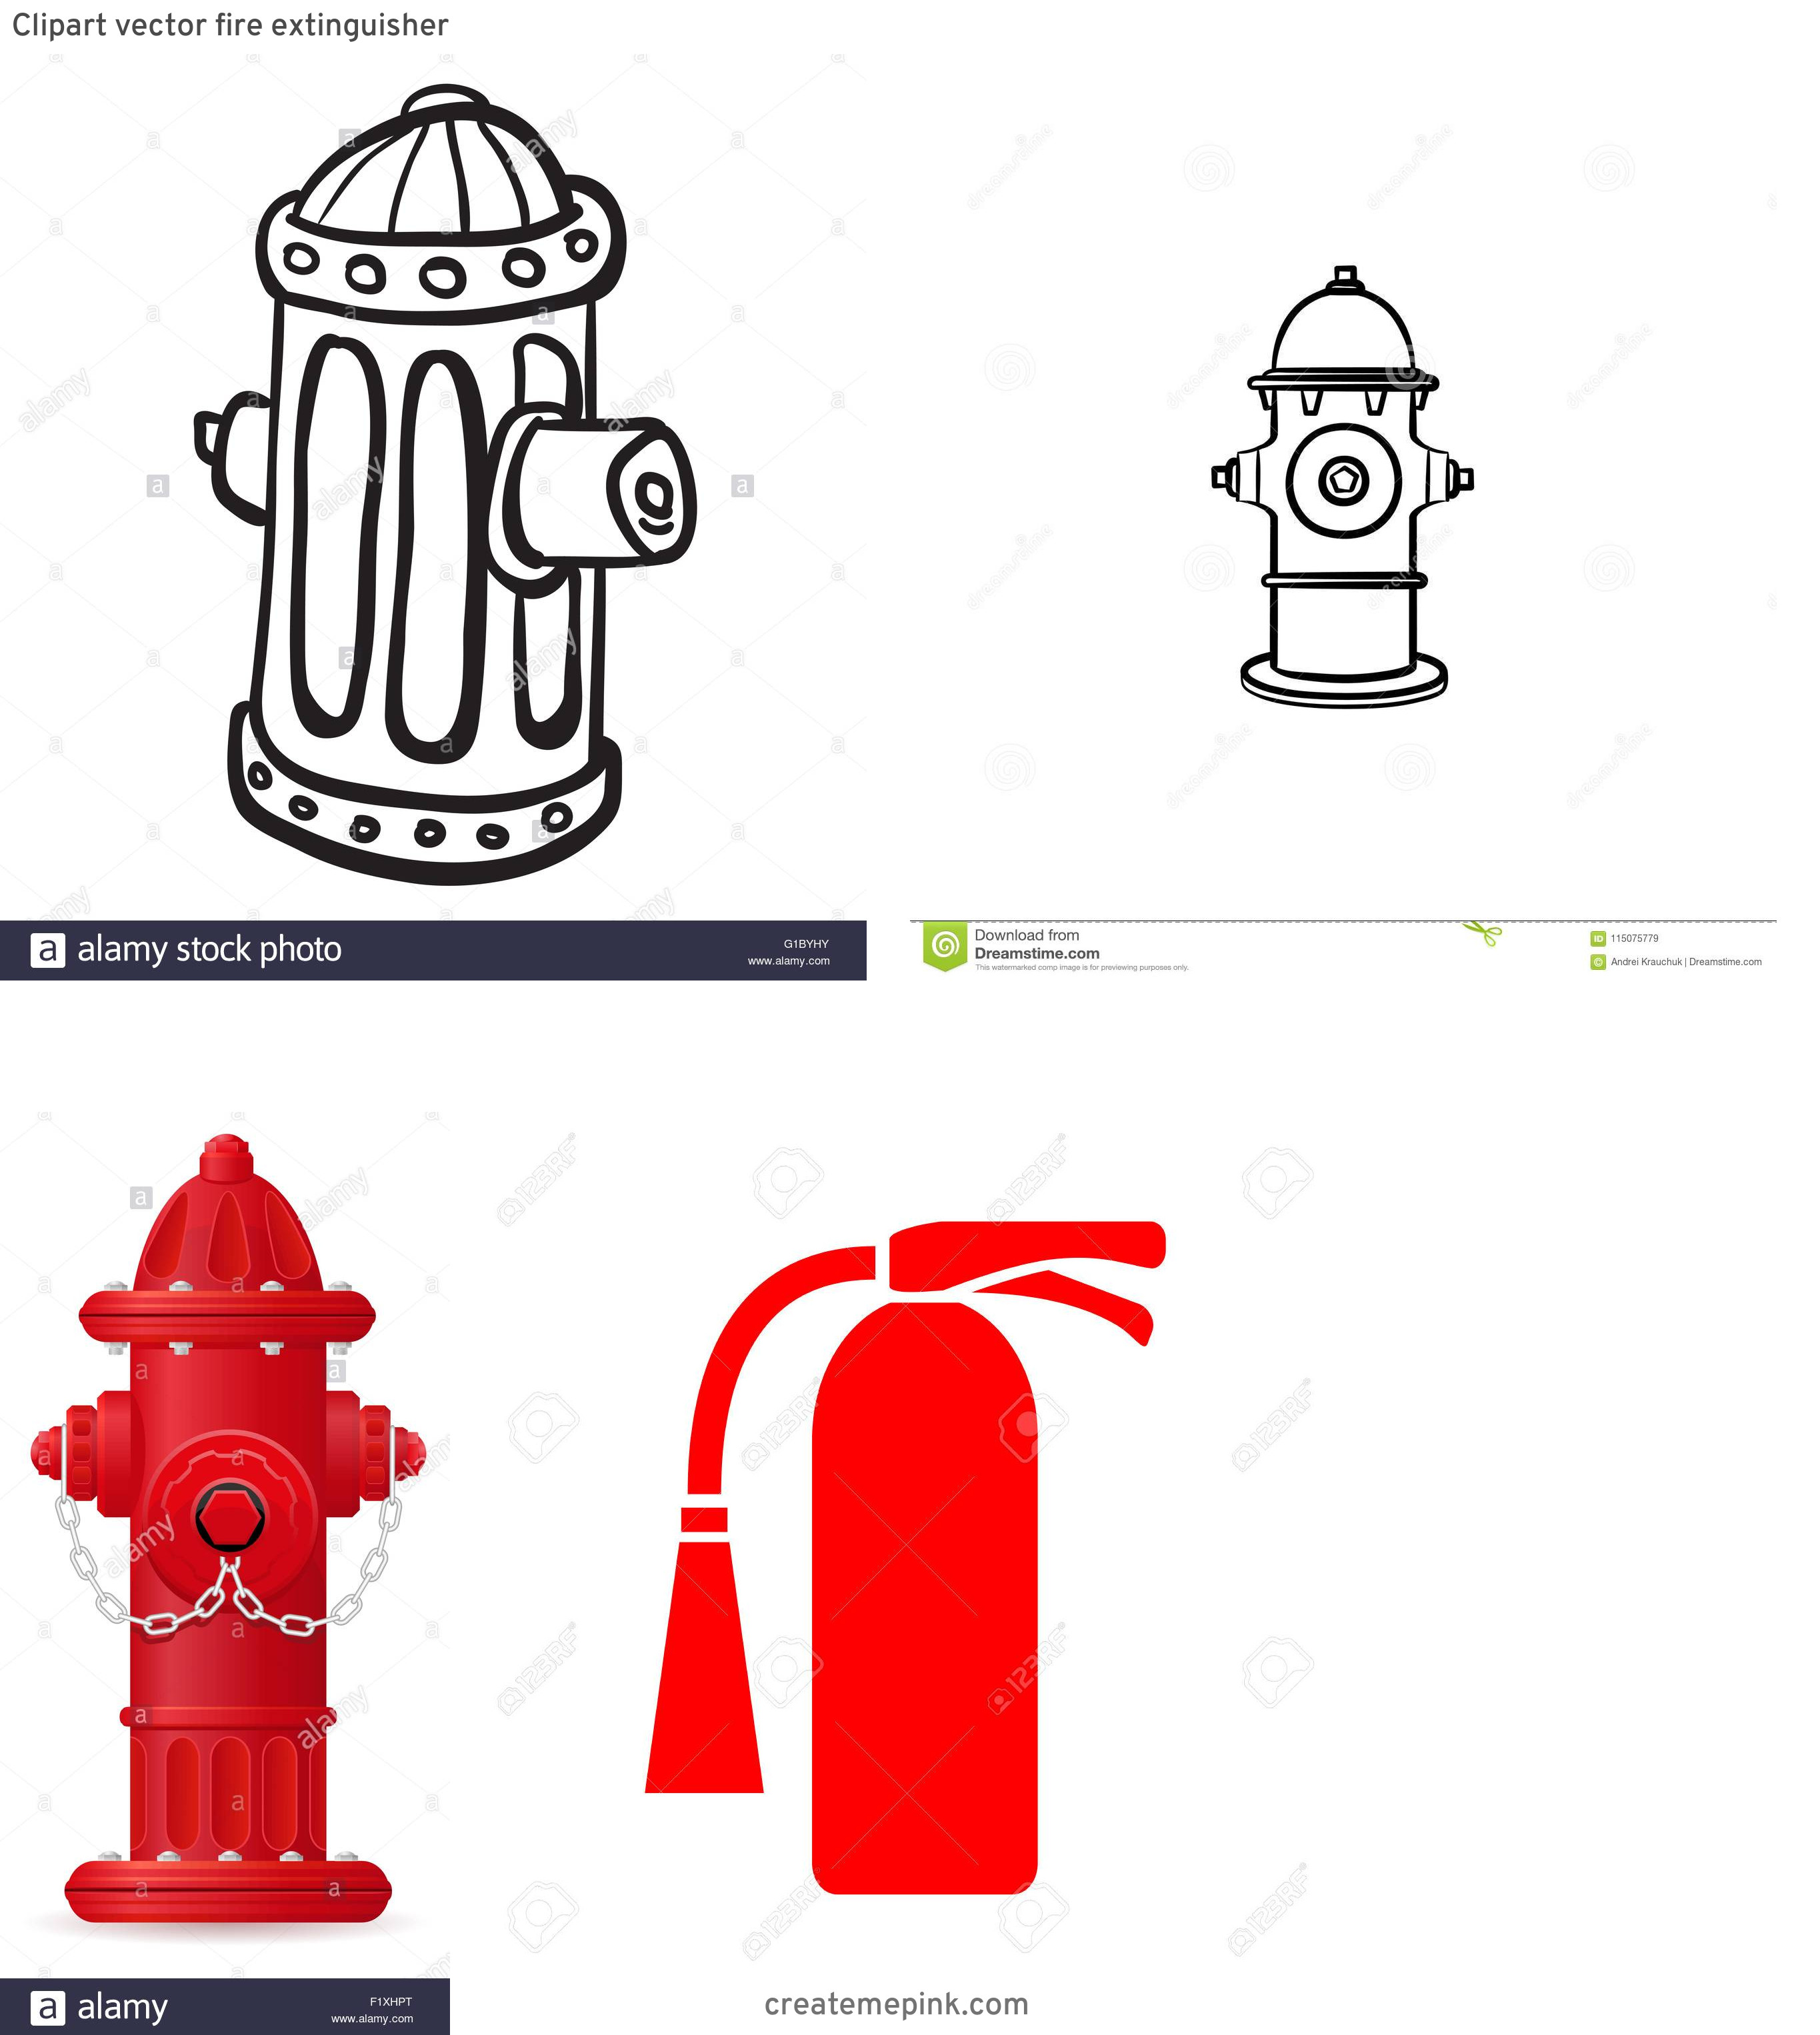 Fire Hydrant Vector Clip Art: Clipart Vector Fire Extinguisher